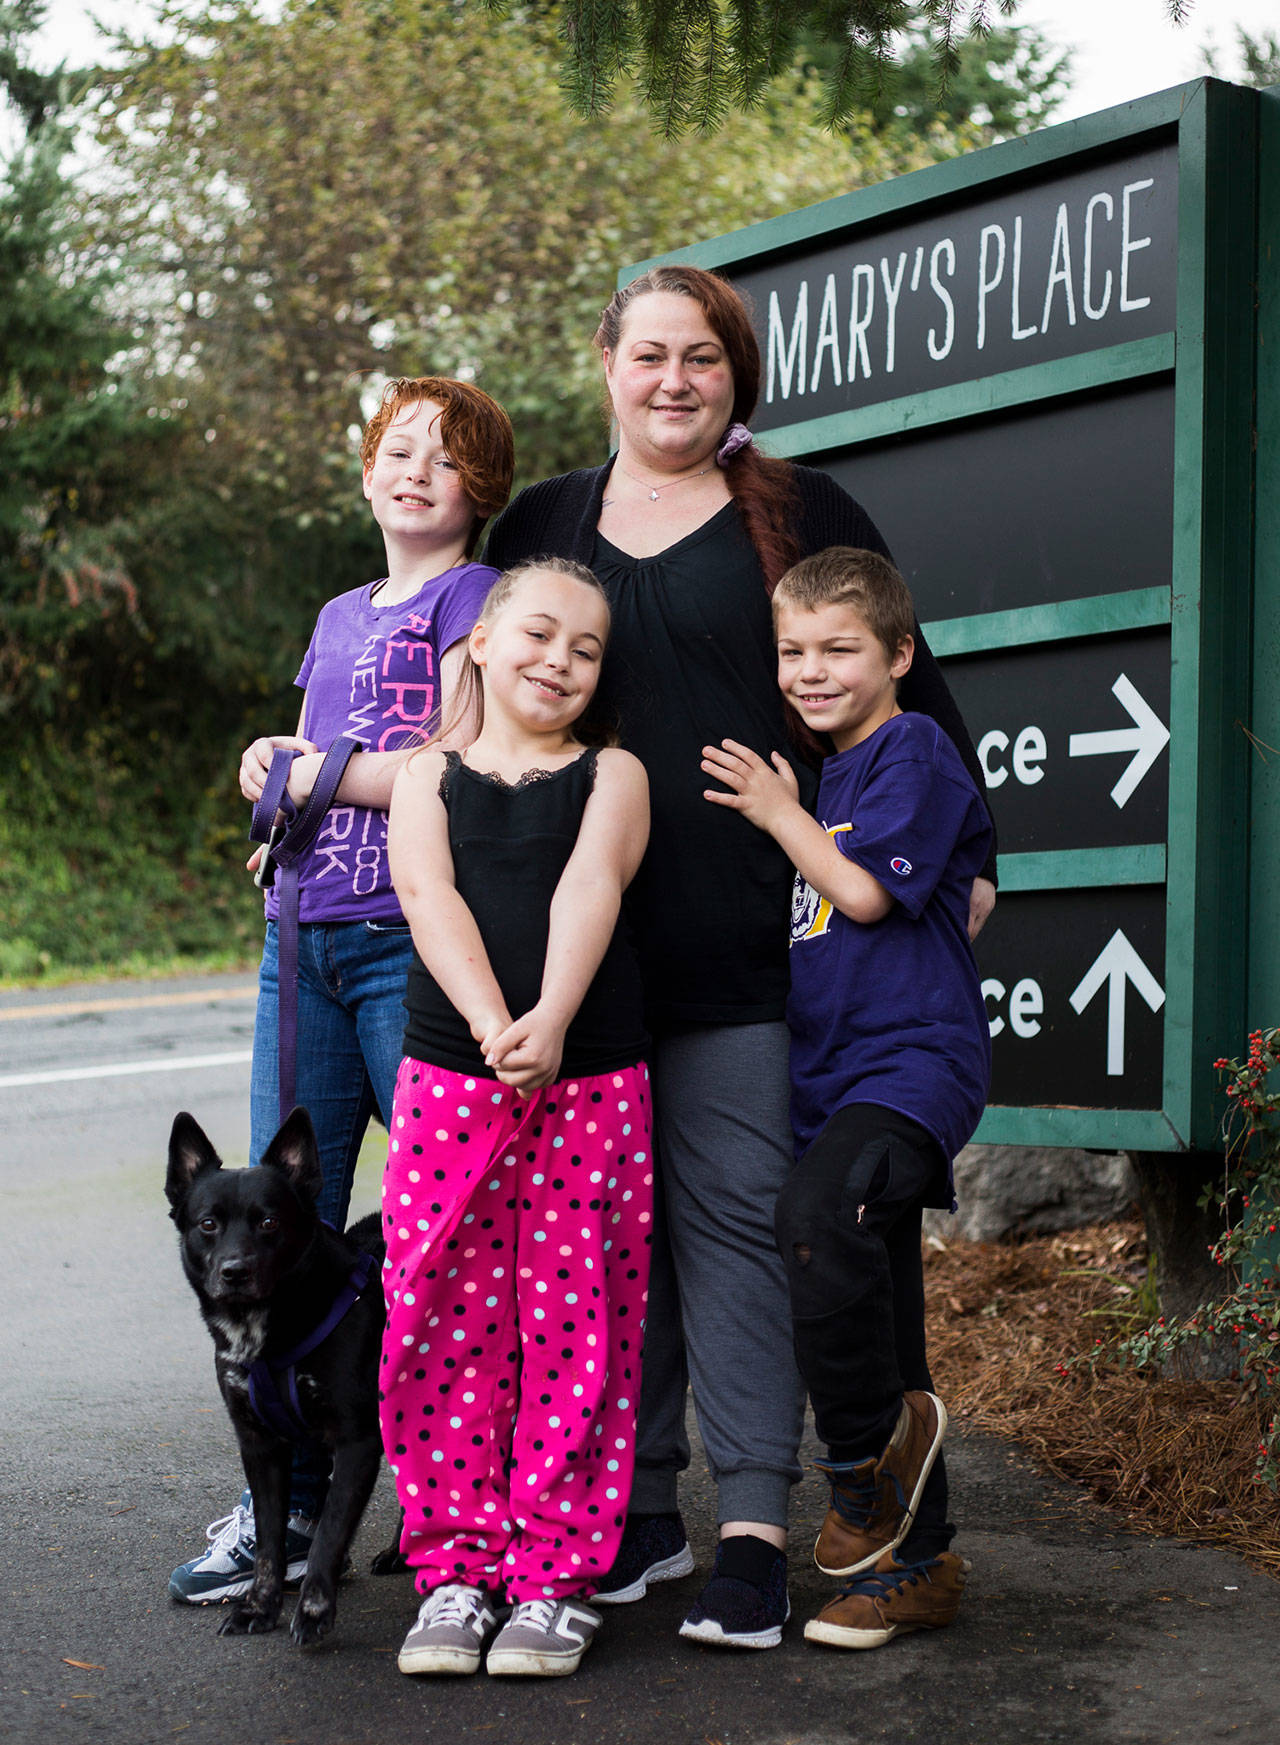 Julie Copeland (center) with her children Lillian, 11, Naomi, 7, and Michah, 9, and their dog Pippin outside of Mary's Place in Burien. (Olivia Vanni / The Herald)